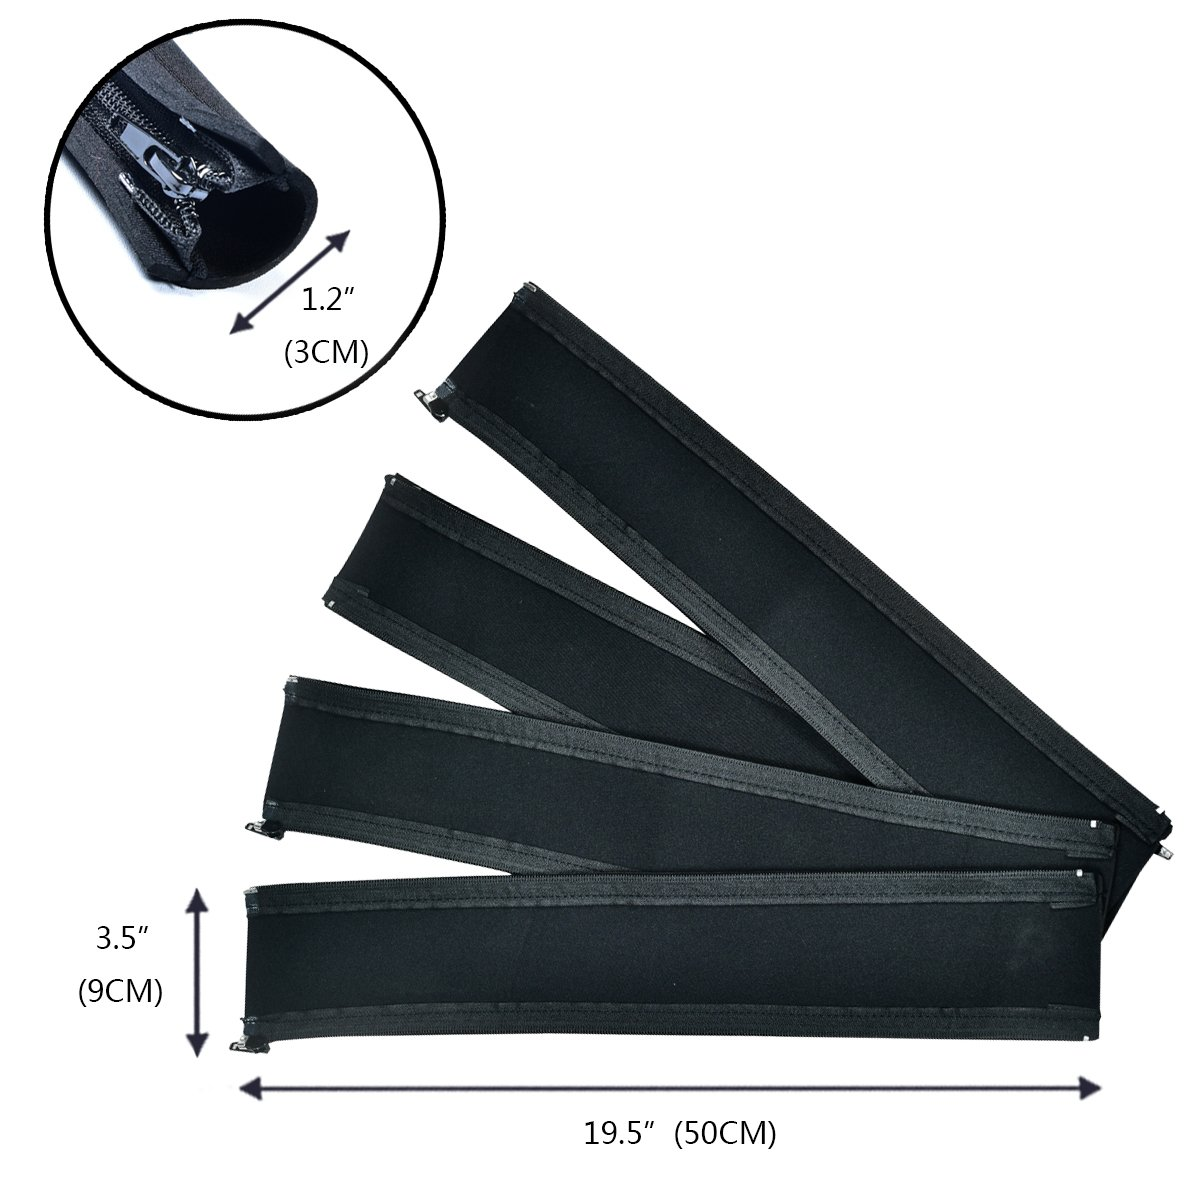 Cable Management Sleeve, Flexible Cable Organizers with Zipper for TV /Computer, 19.5 Inch Black Cord Covers ,4 Packs